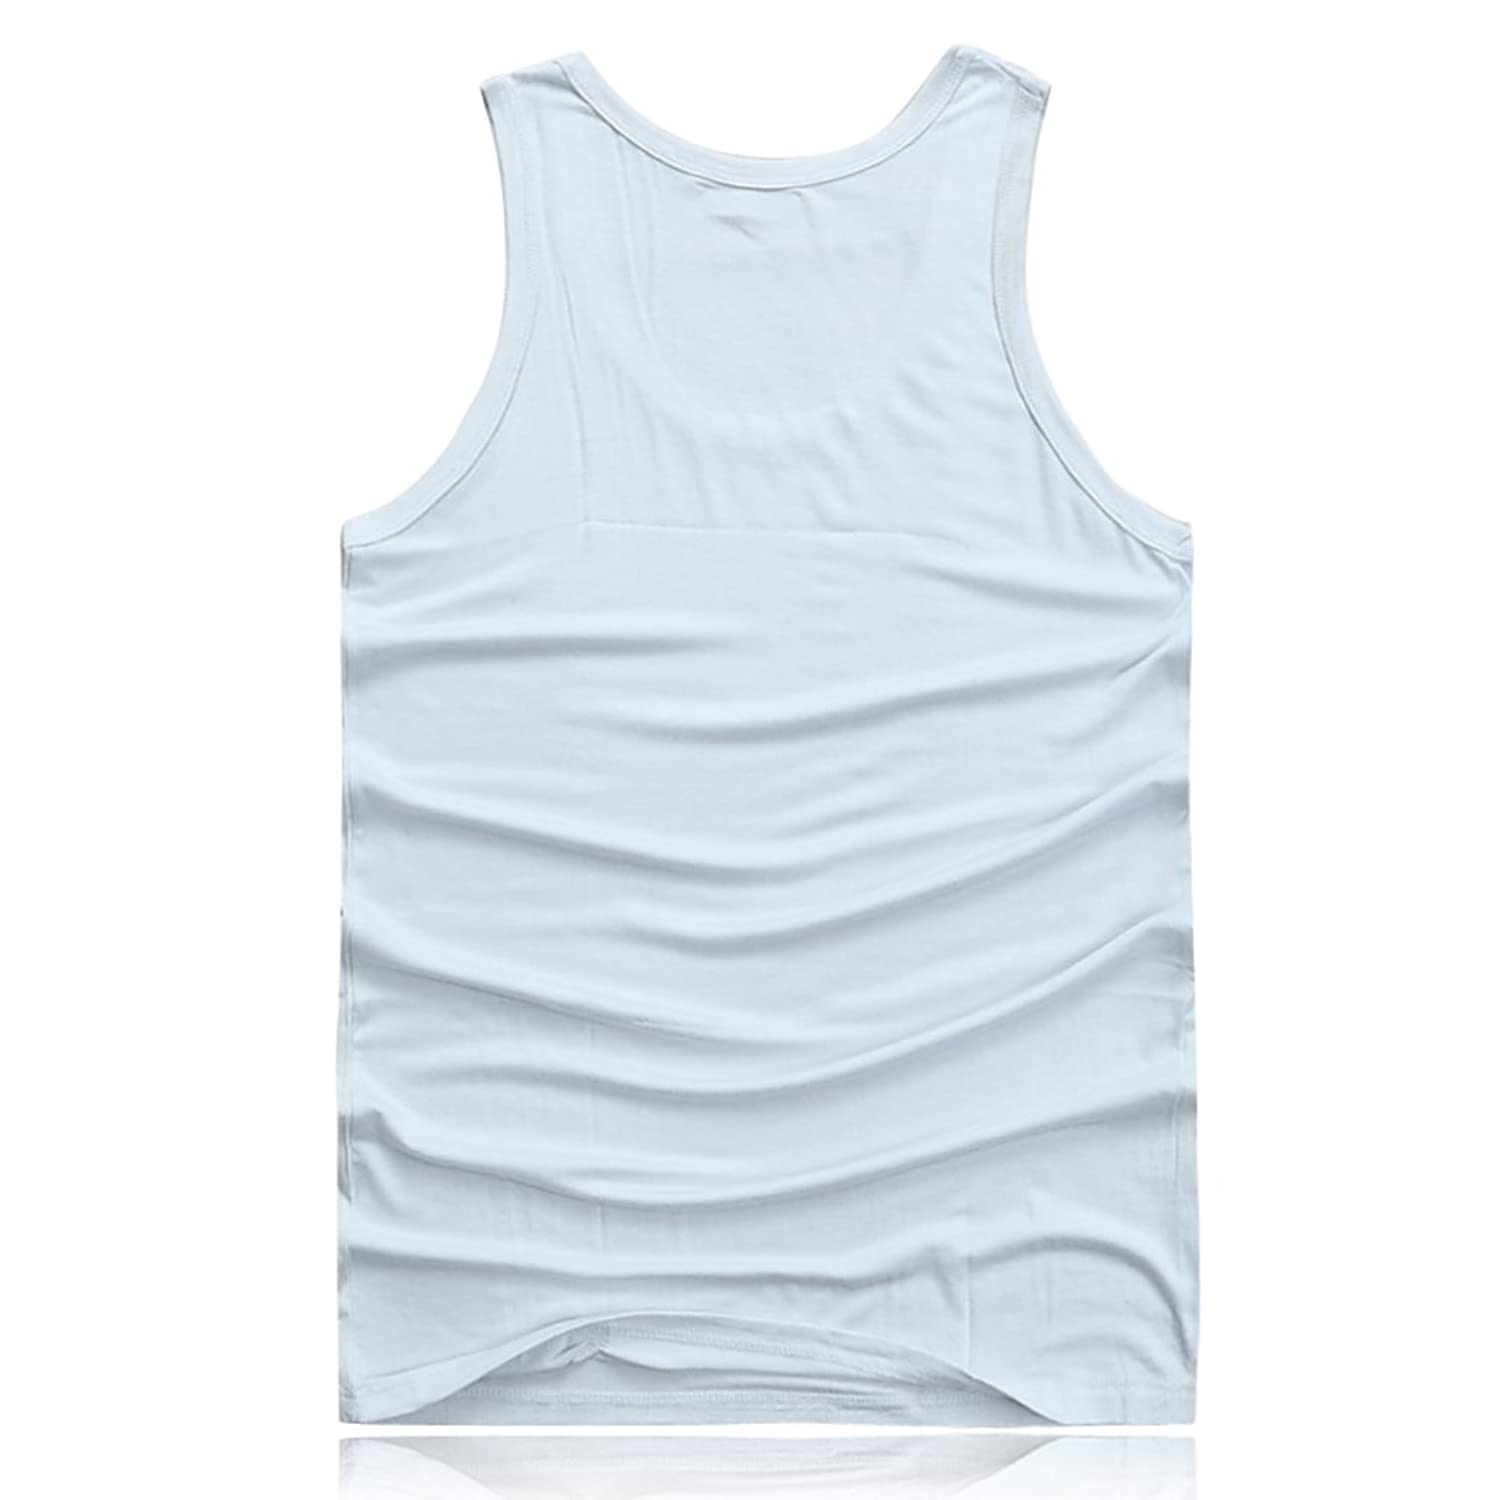 Zhhlinyuan メンズタンクトップMen's Elastic Vest Training Gym Lose Weight Shirt